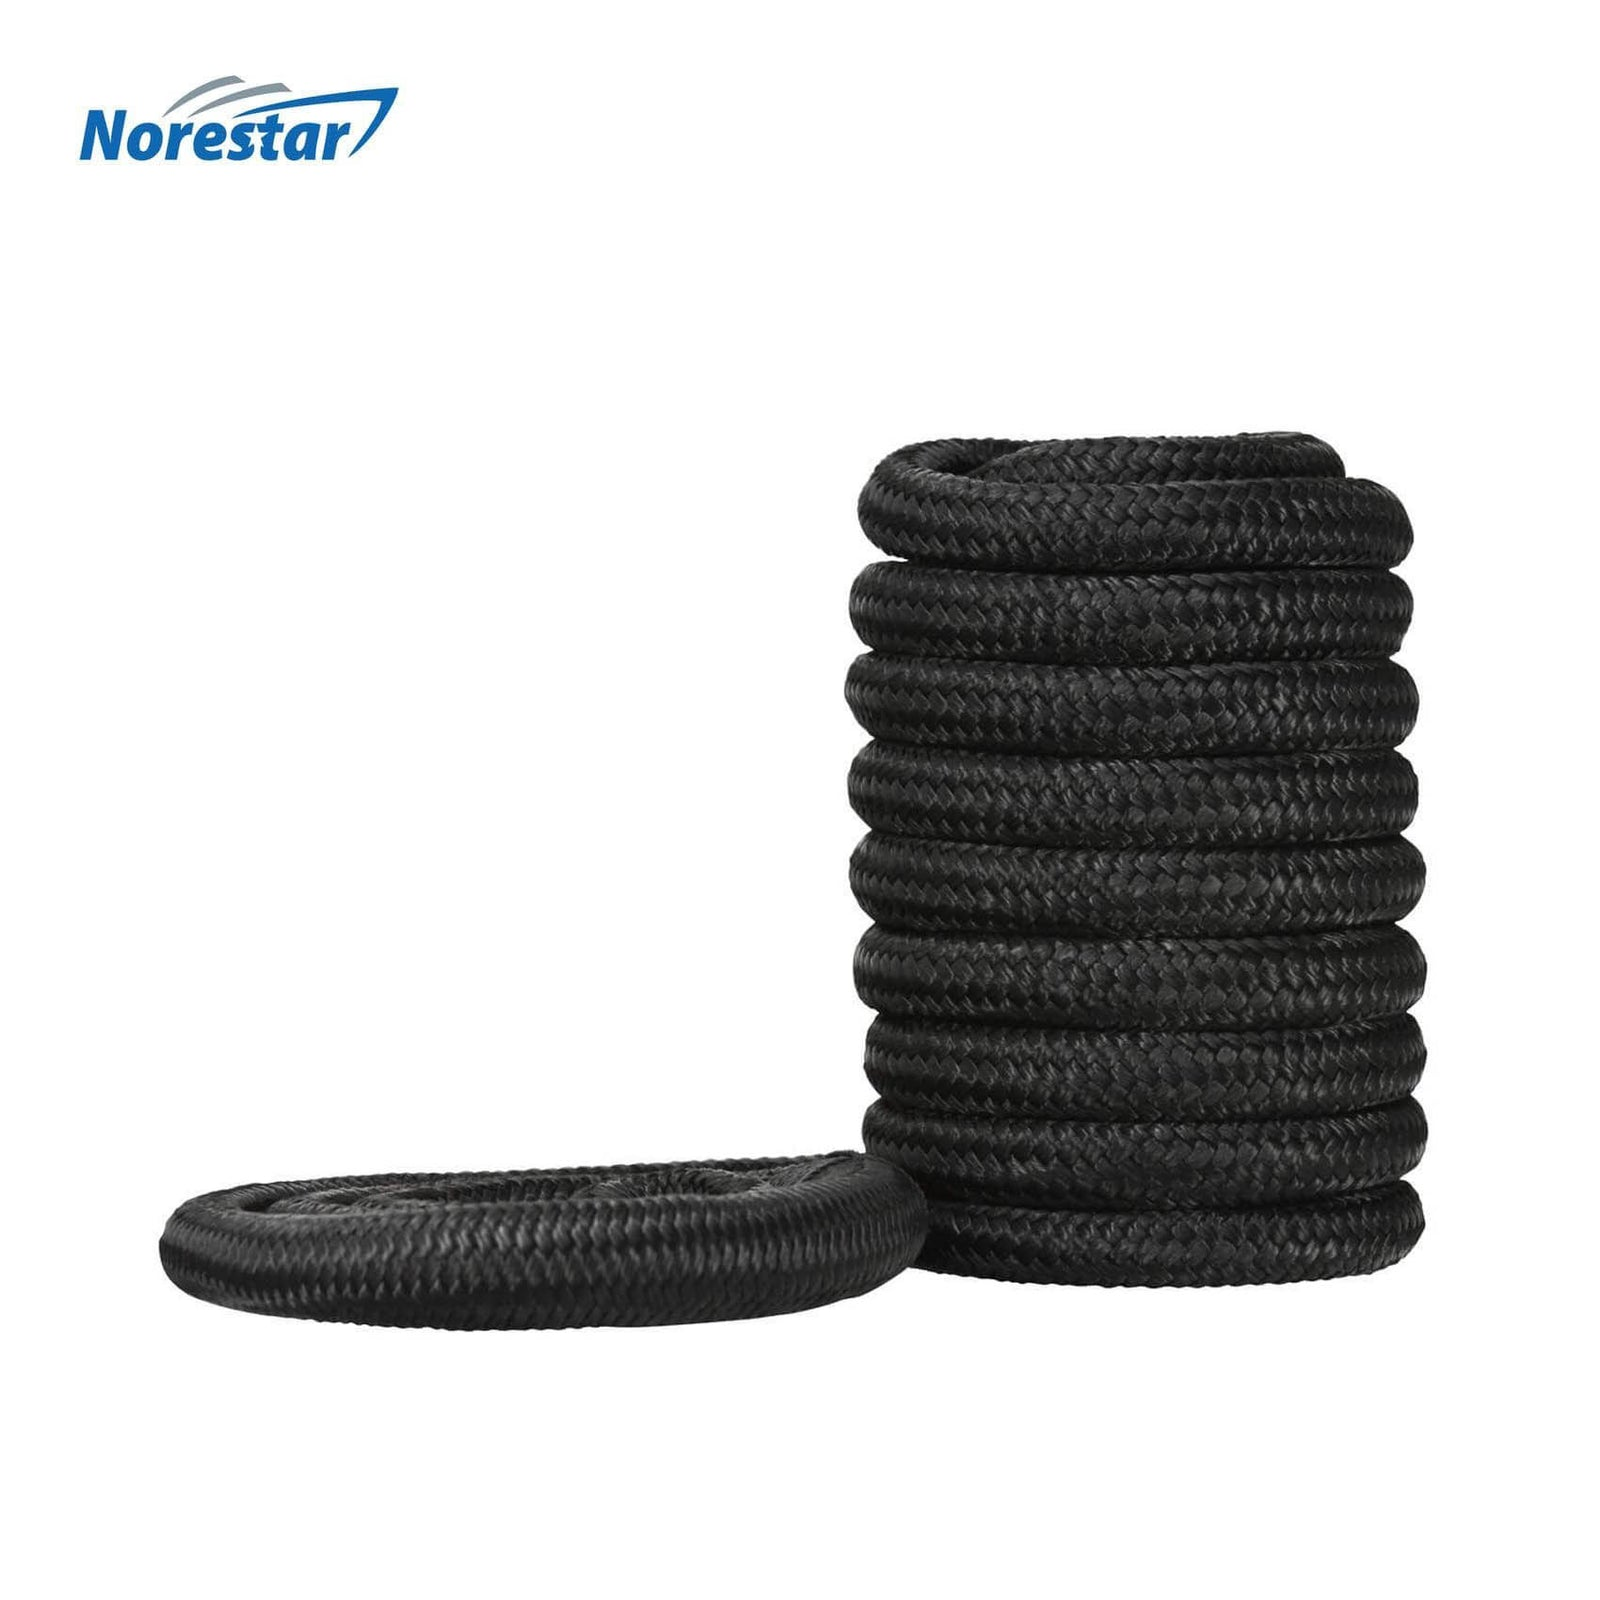 Norestar Braided Nylon Dock Line, Black